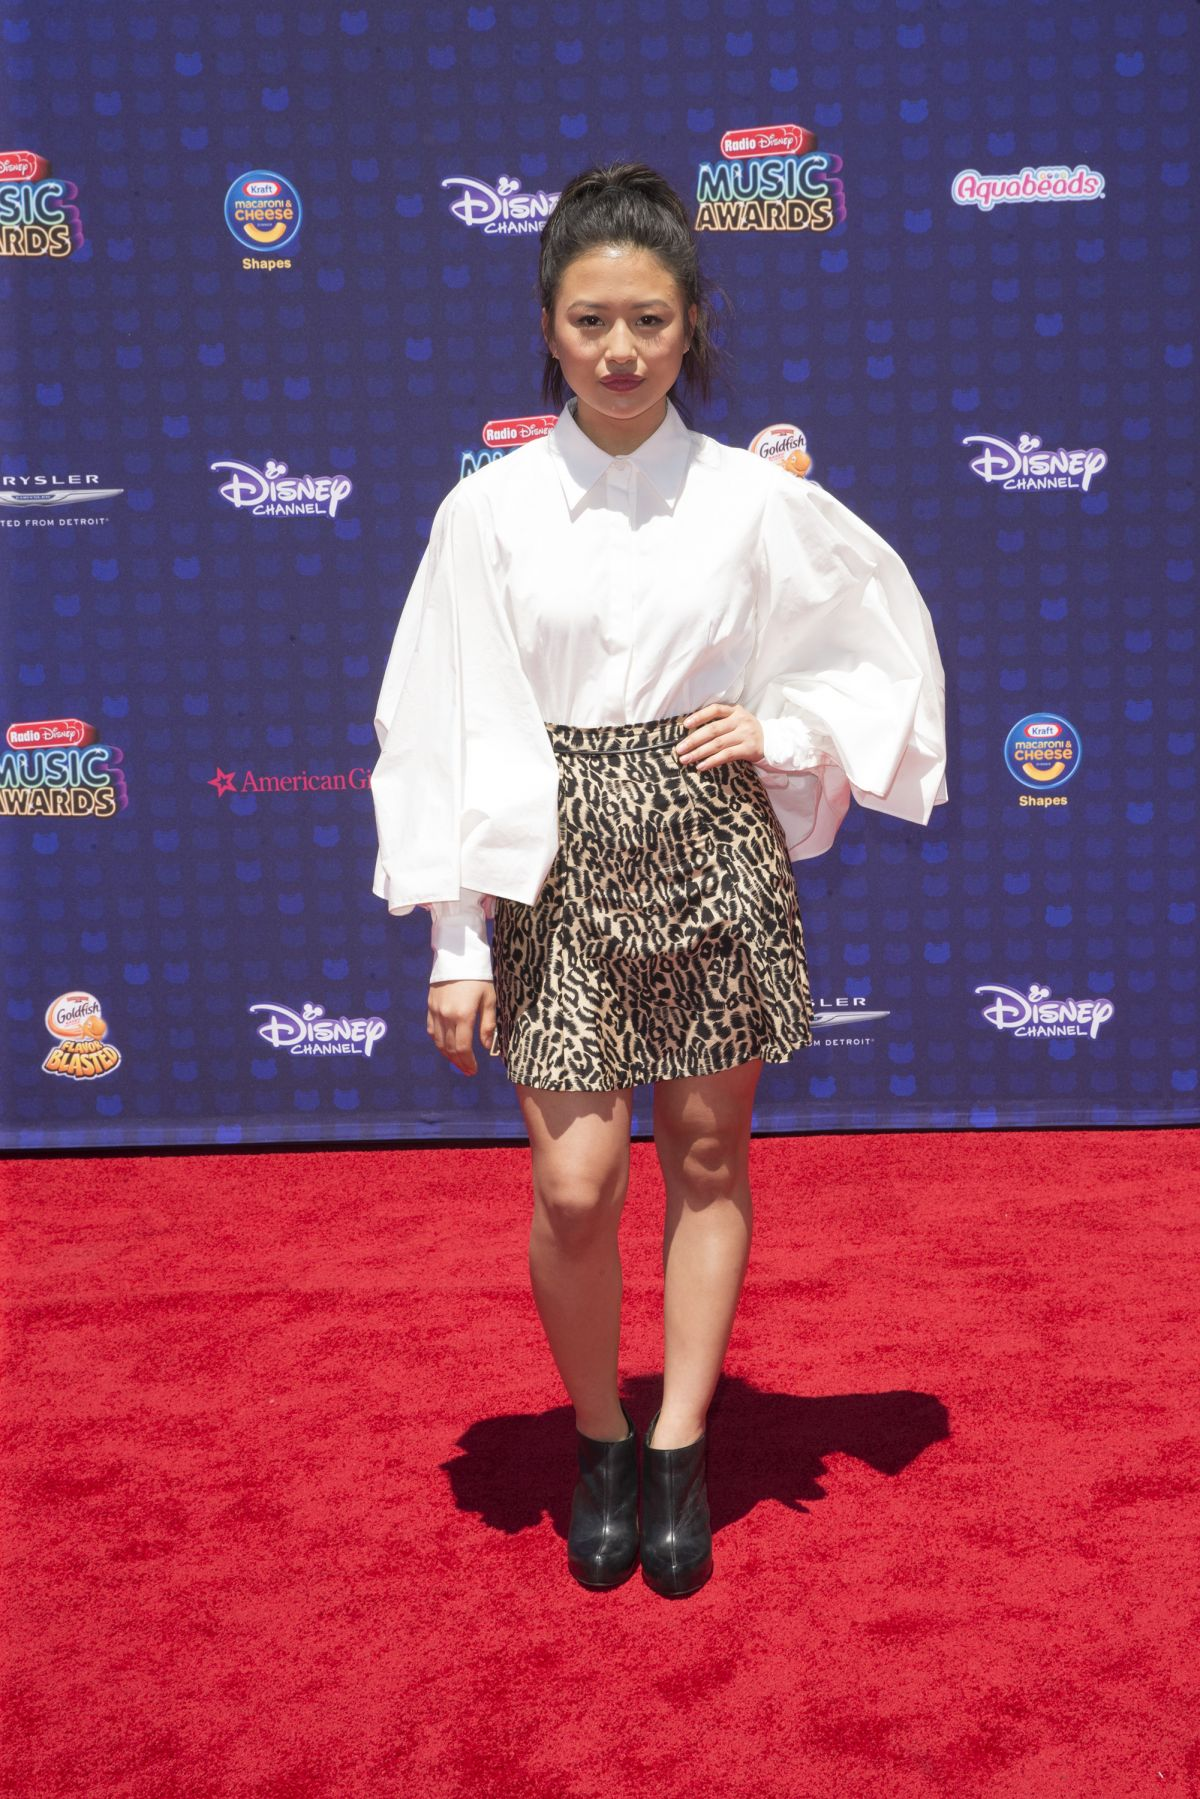 HALEY TJU at 2017 Radio Disney Music Awards in Los Angeles 04/29/2017